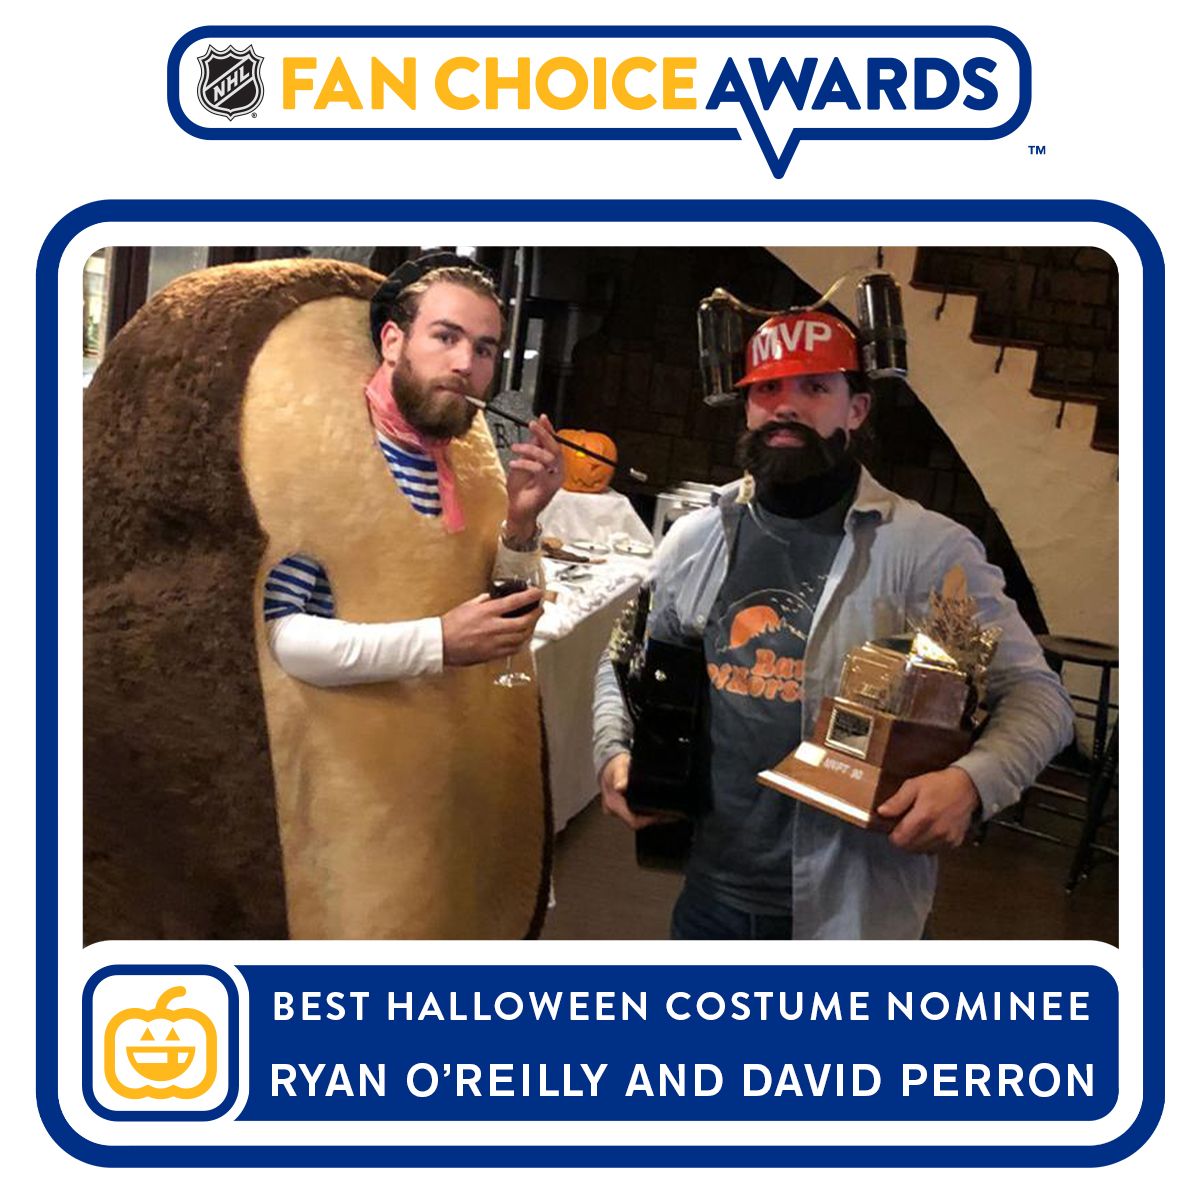 Theres only two days left to vote!!! Submit your votes now for #stlblues nominees in the #NHLFanChoice Awards! VOTE NOW: bit.ly/2yI9WtD